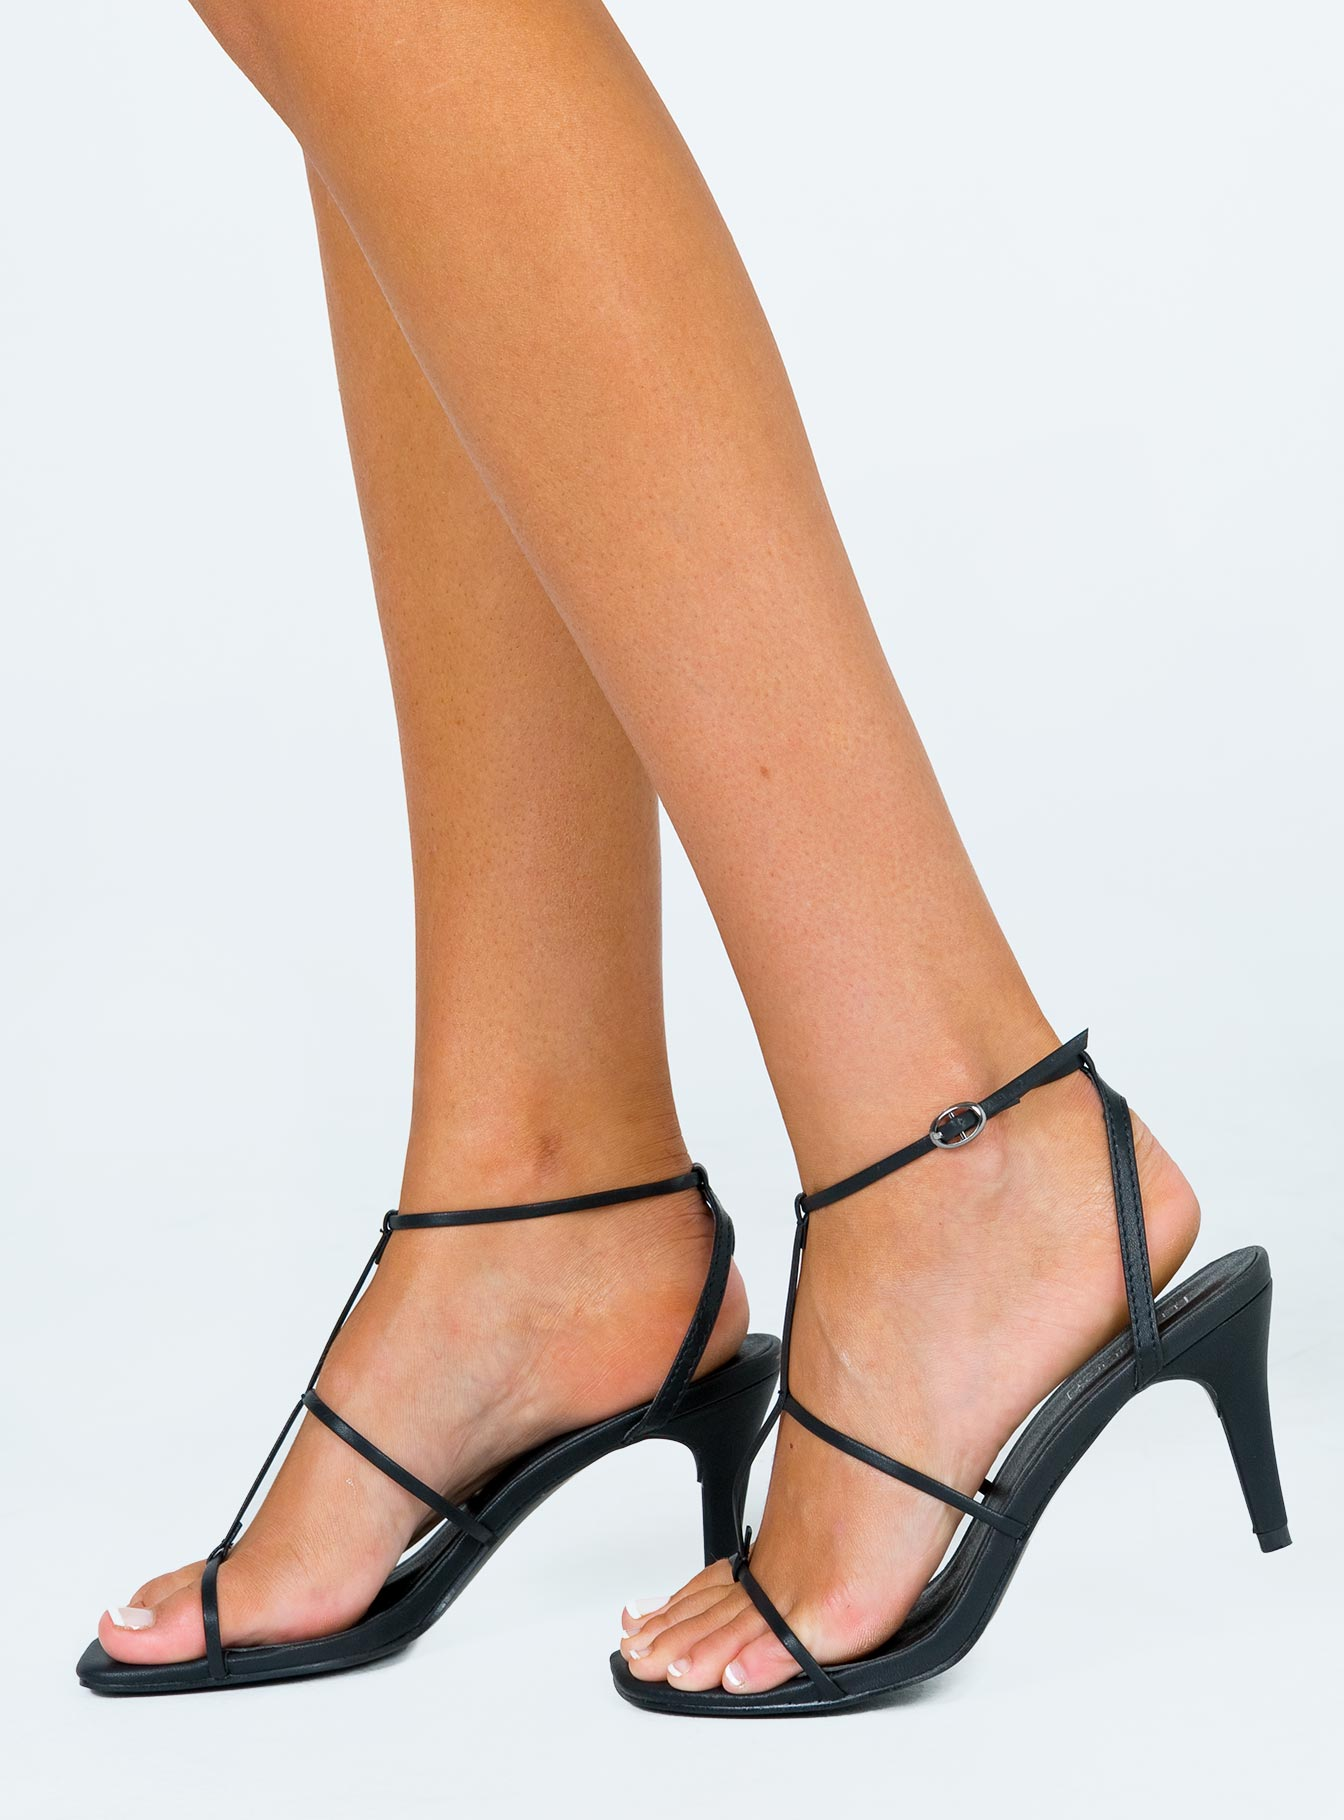 Therapy Jada Black Heels